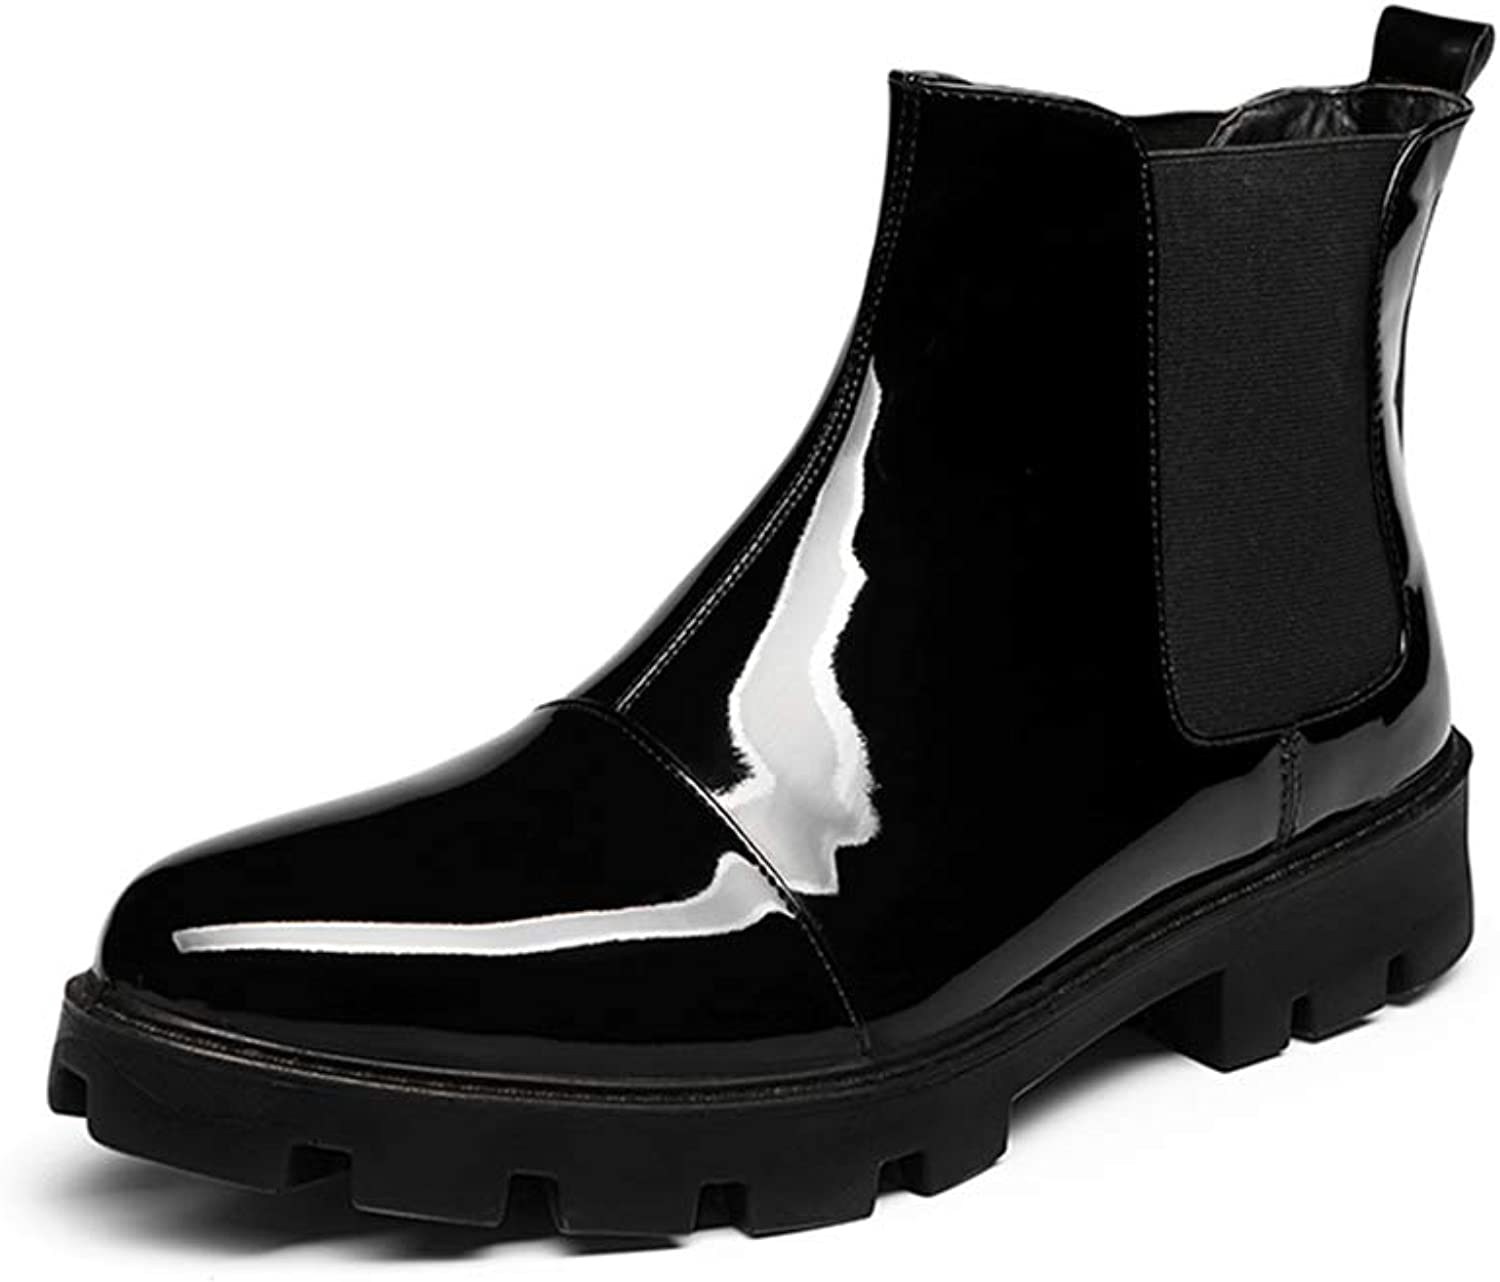 Easy Go Shopping Men's Fashion Ankle Boot Casual Comfortable Cover with Patent Leather High Top shoes Cricket shoes